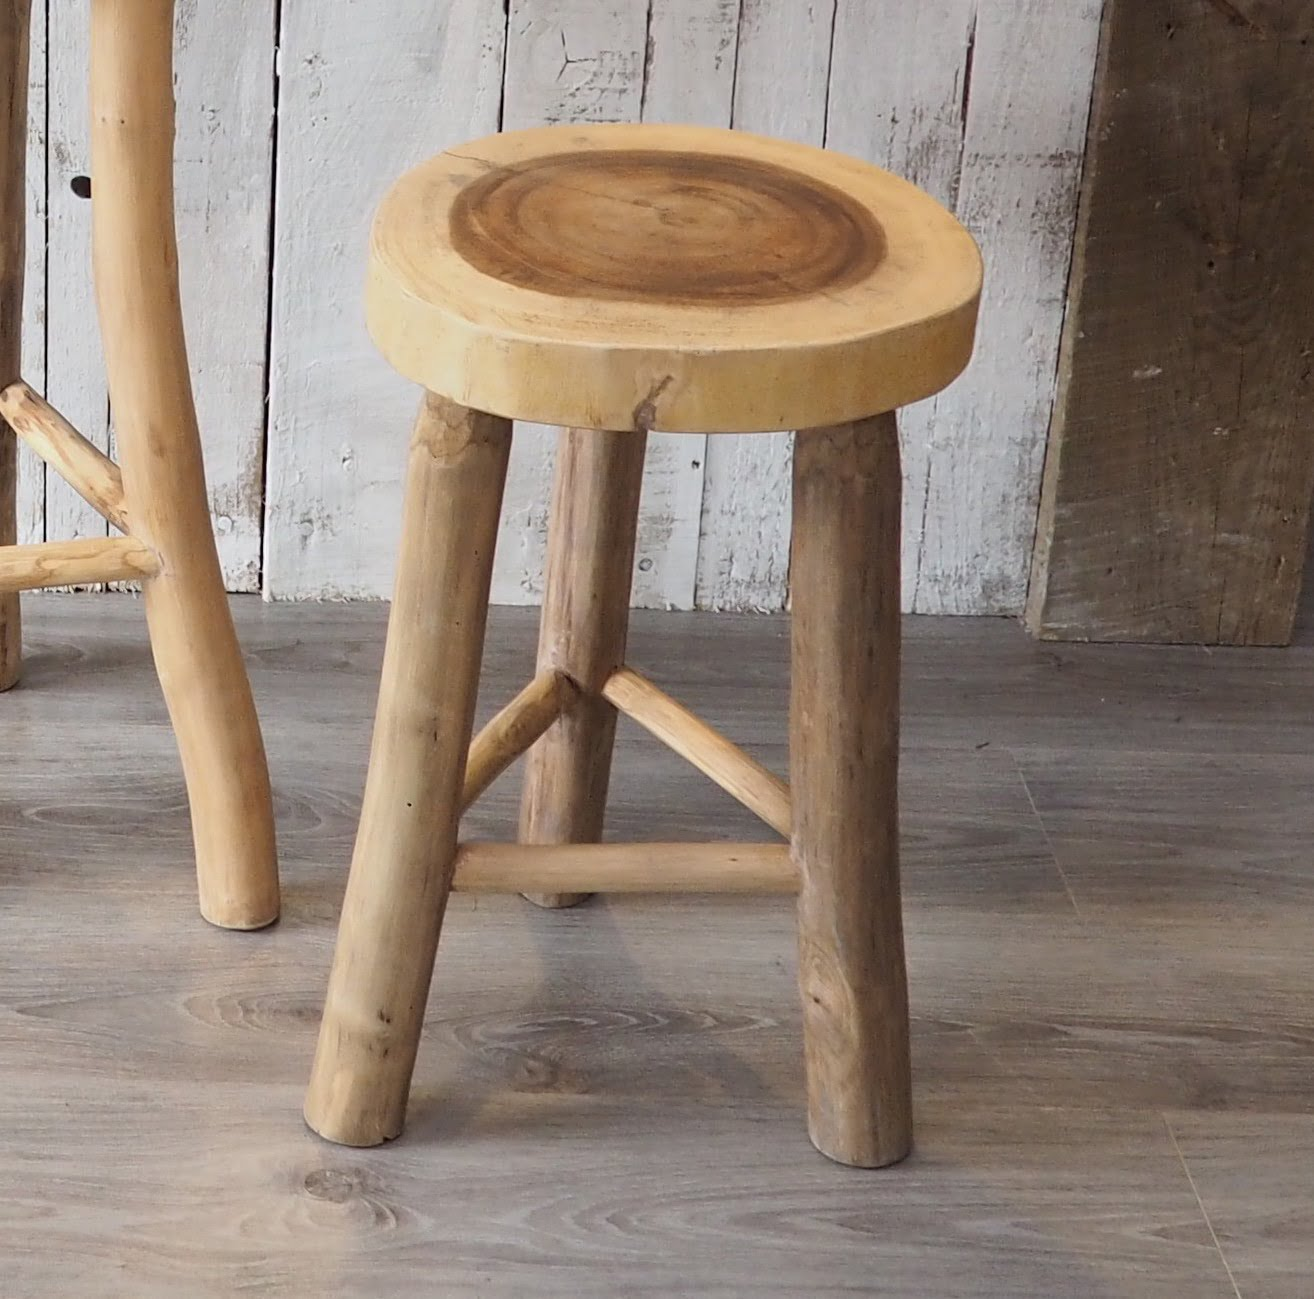 Rustic Wooden Stools ~ Rustic wooden stool zaza homes